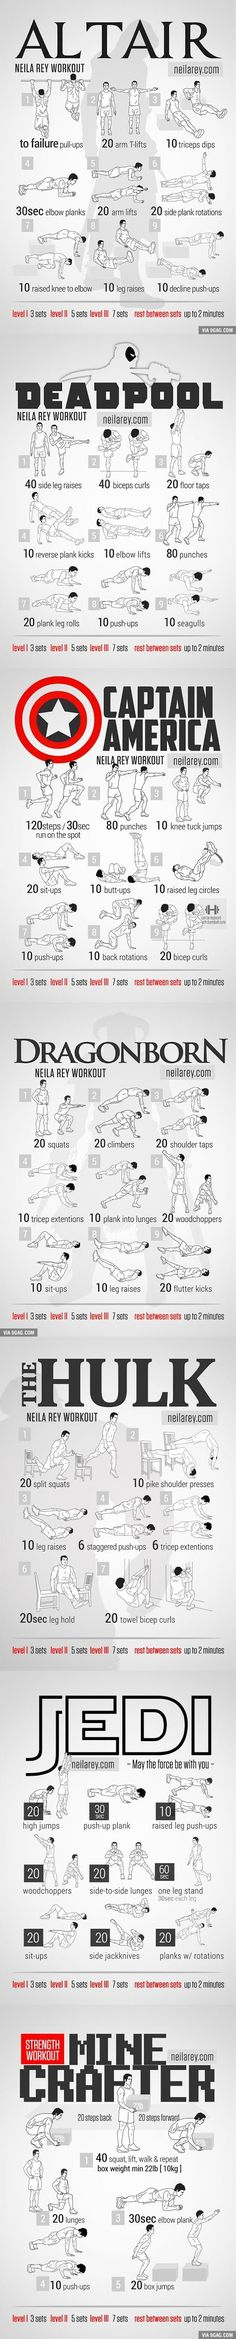 New Hardcore Workout! You're welcome!